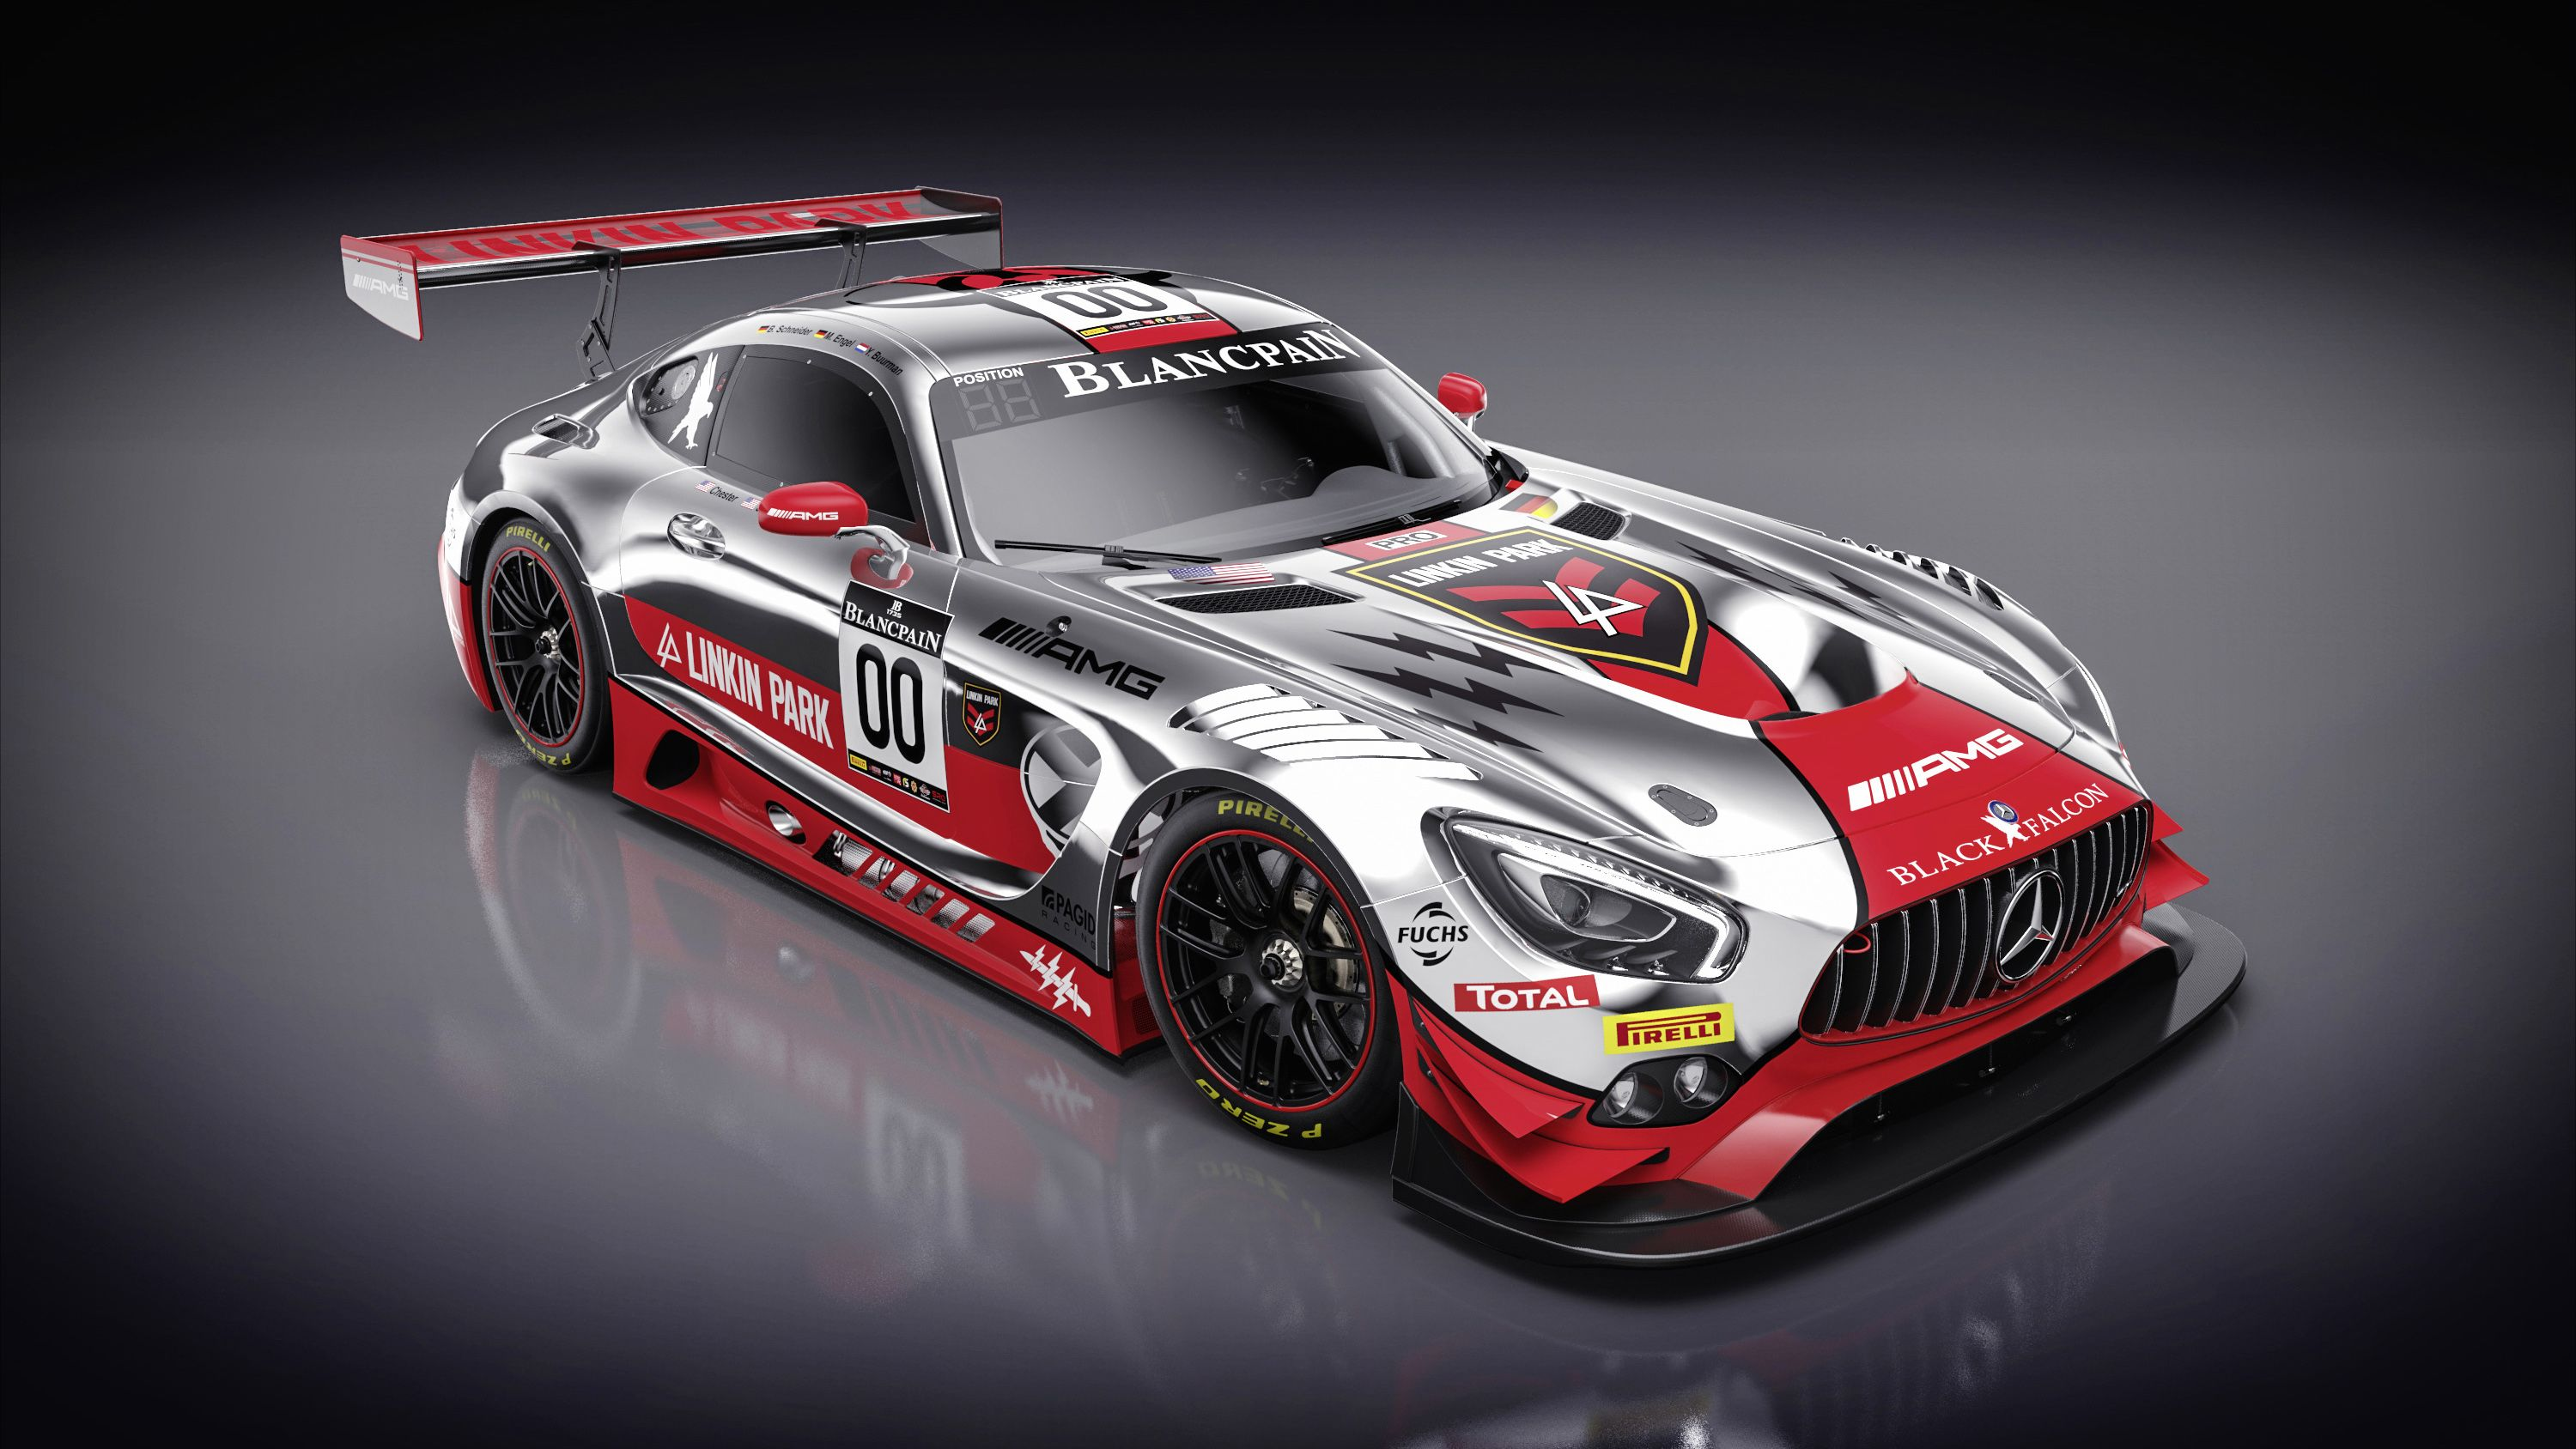 Mercedes Amg Gt3 With Linkin Park Livery 2016 With Images